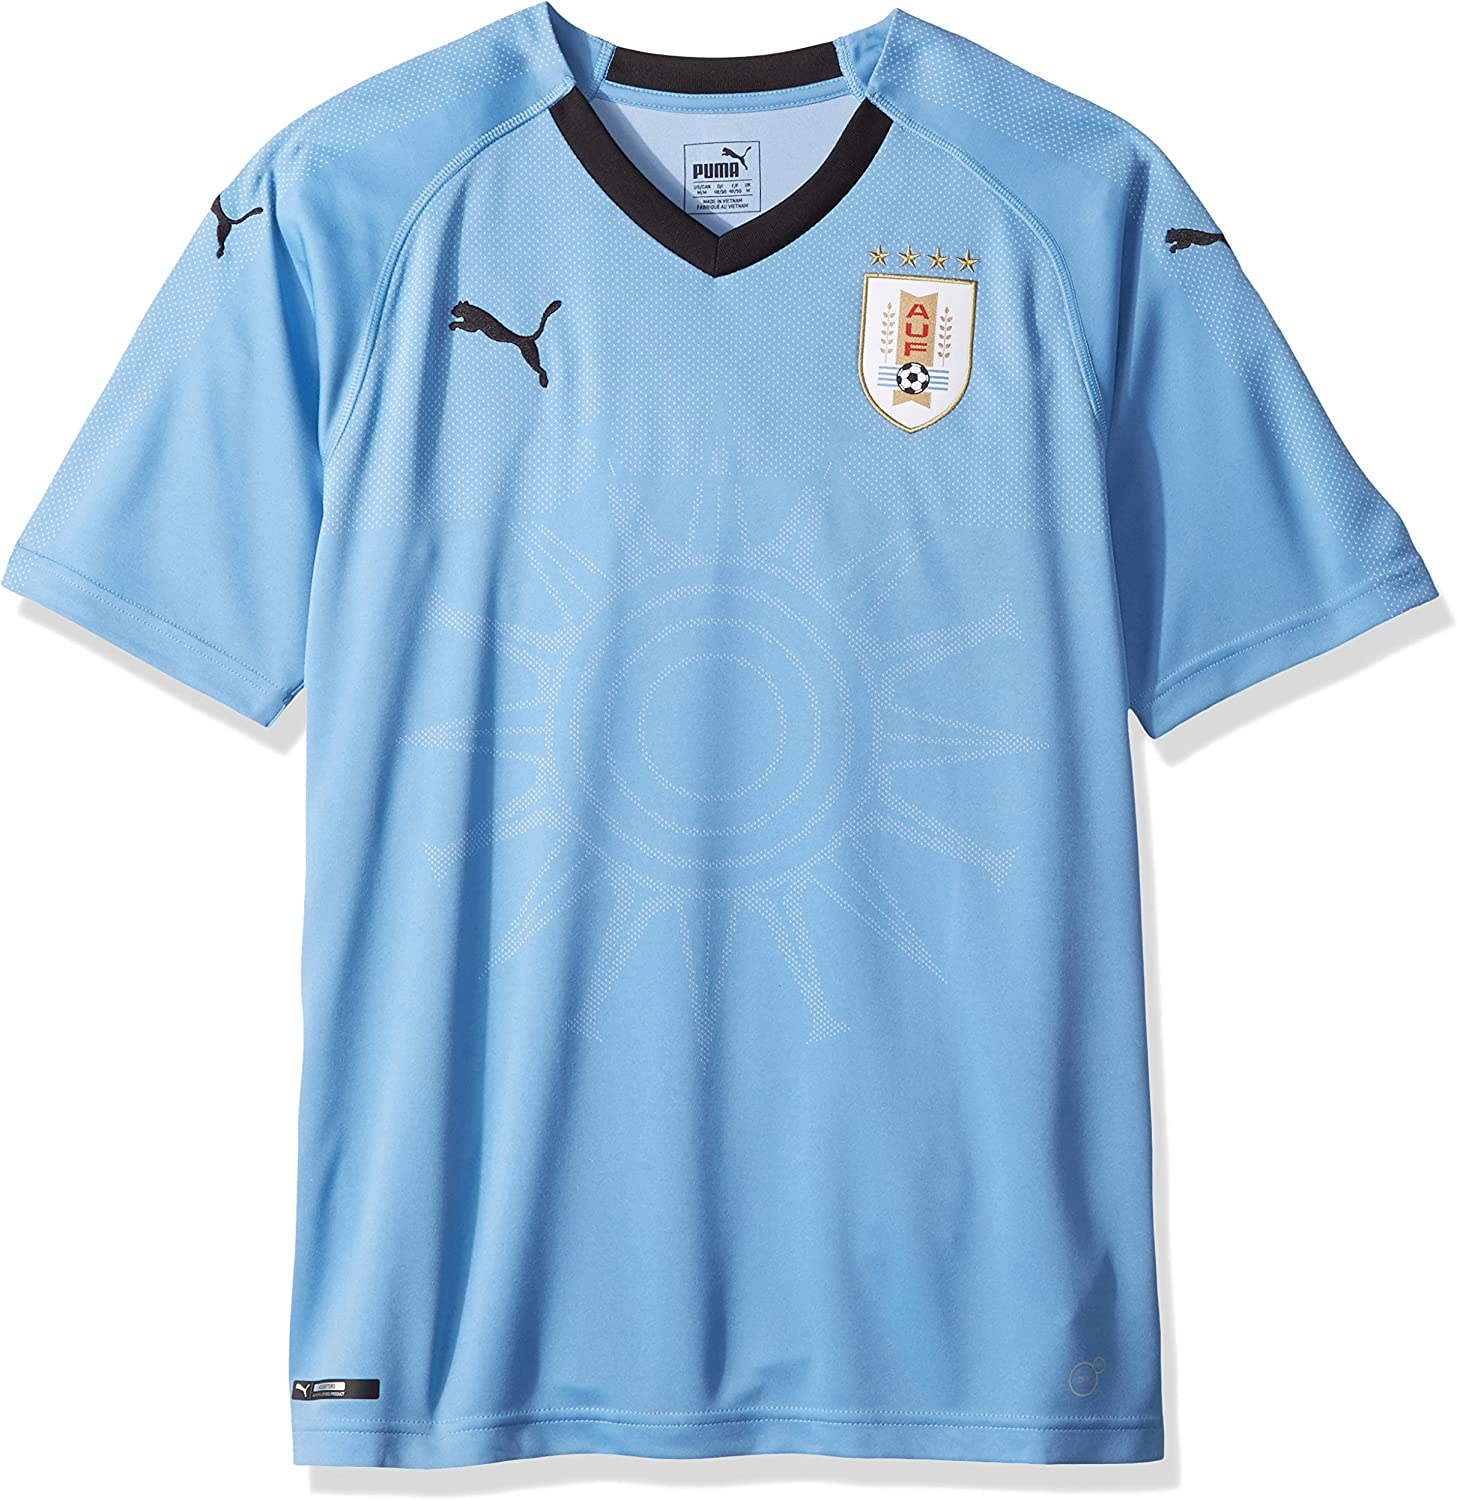 PUMA Men's Uruguay Safety and Opening large release sale trust Replica Shirt